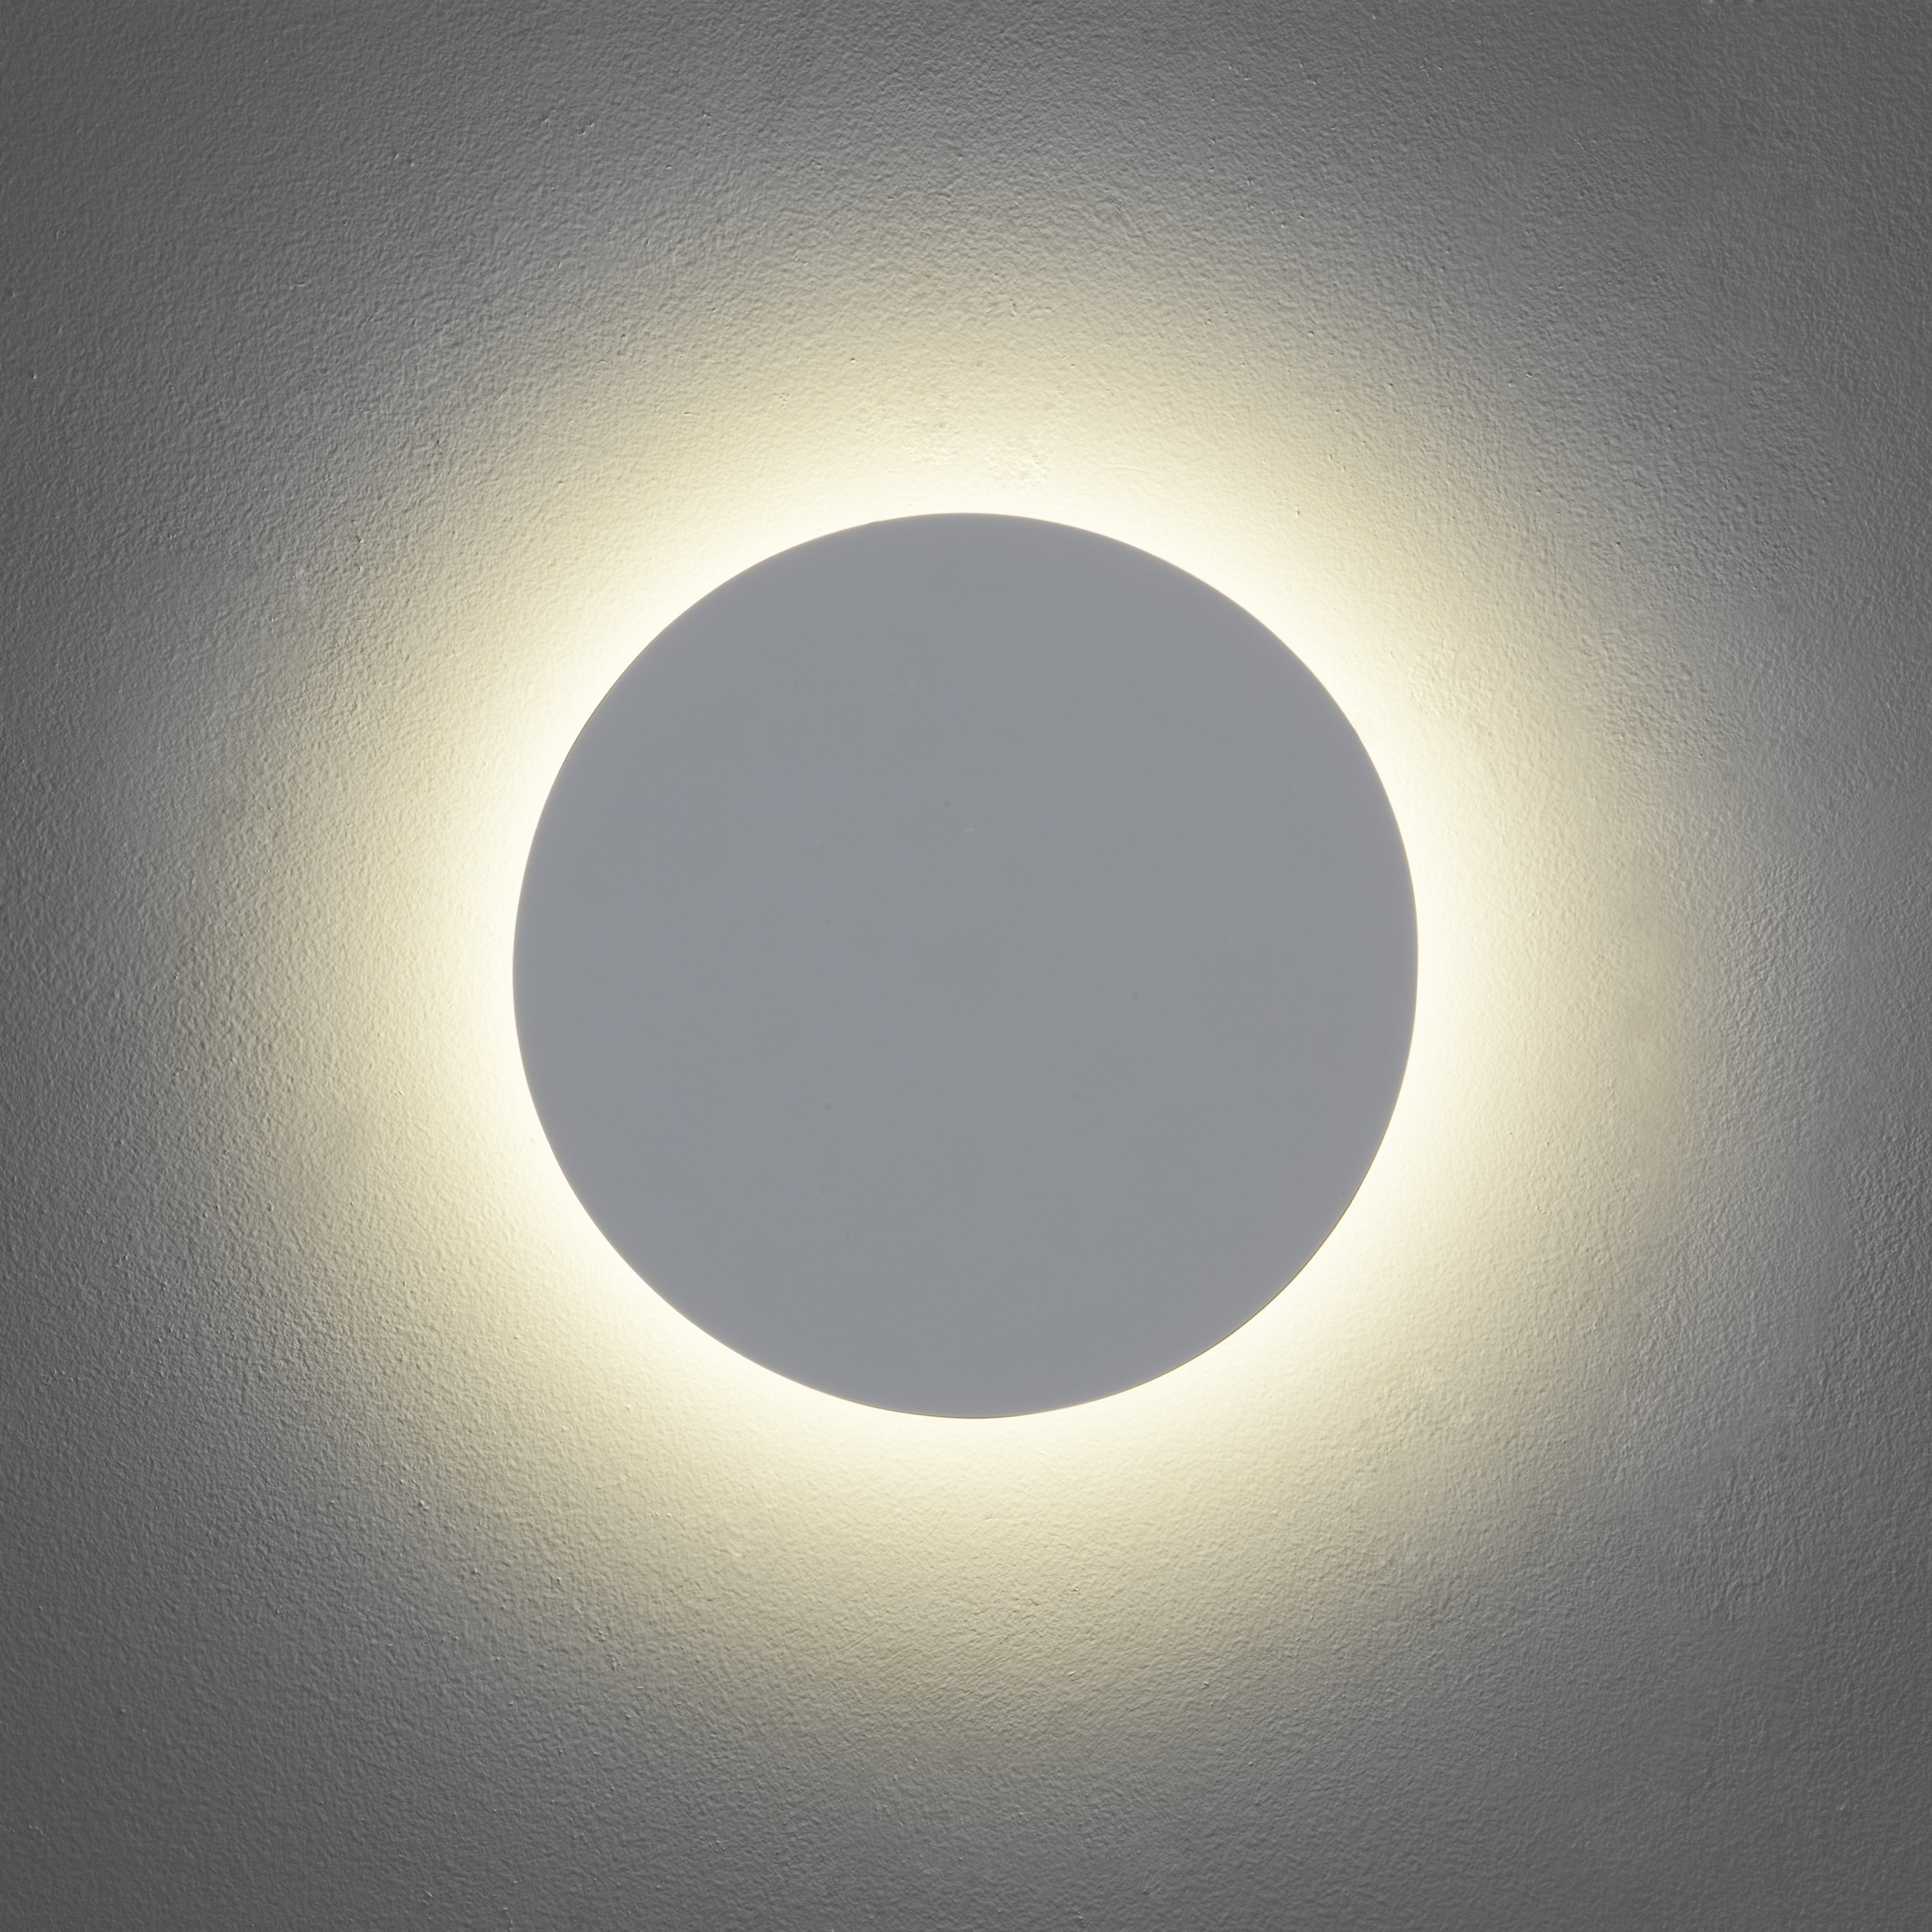 einzigartige-led-wandleuchte-mit-up-down-lichteffekt-eclipse-round-250-7c4 Erstaunlich Wandleuchte Up and Down Dekorationen